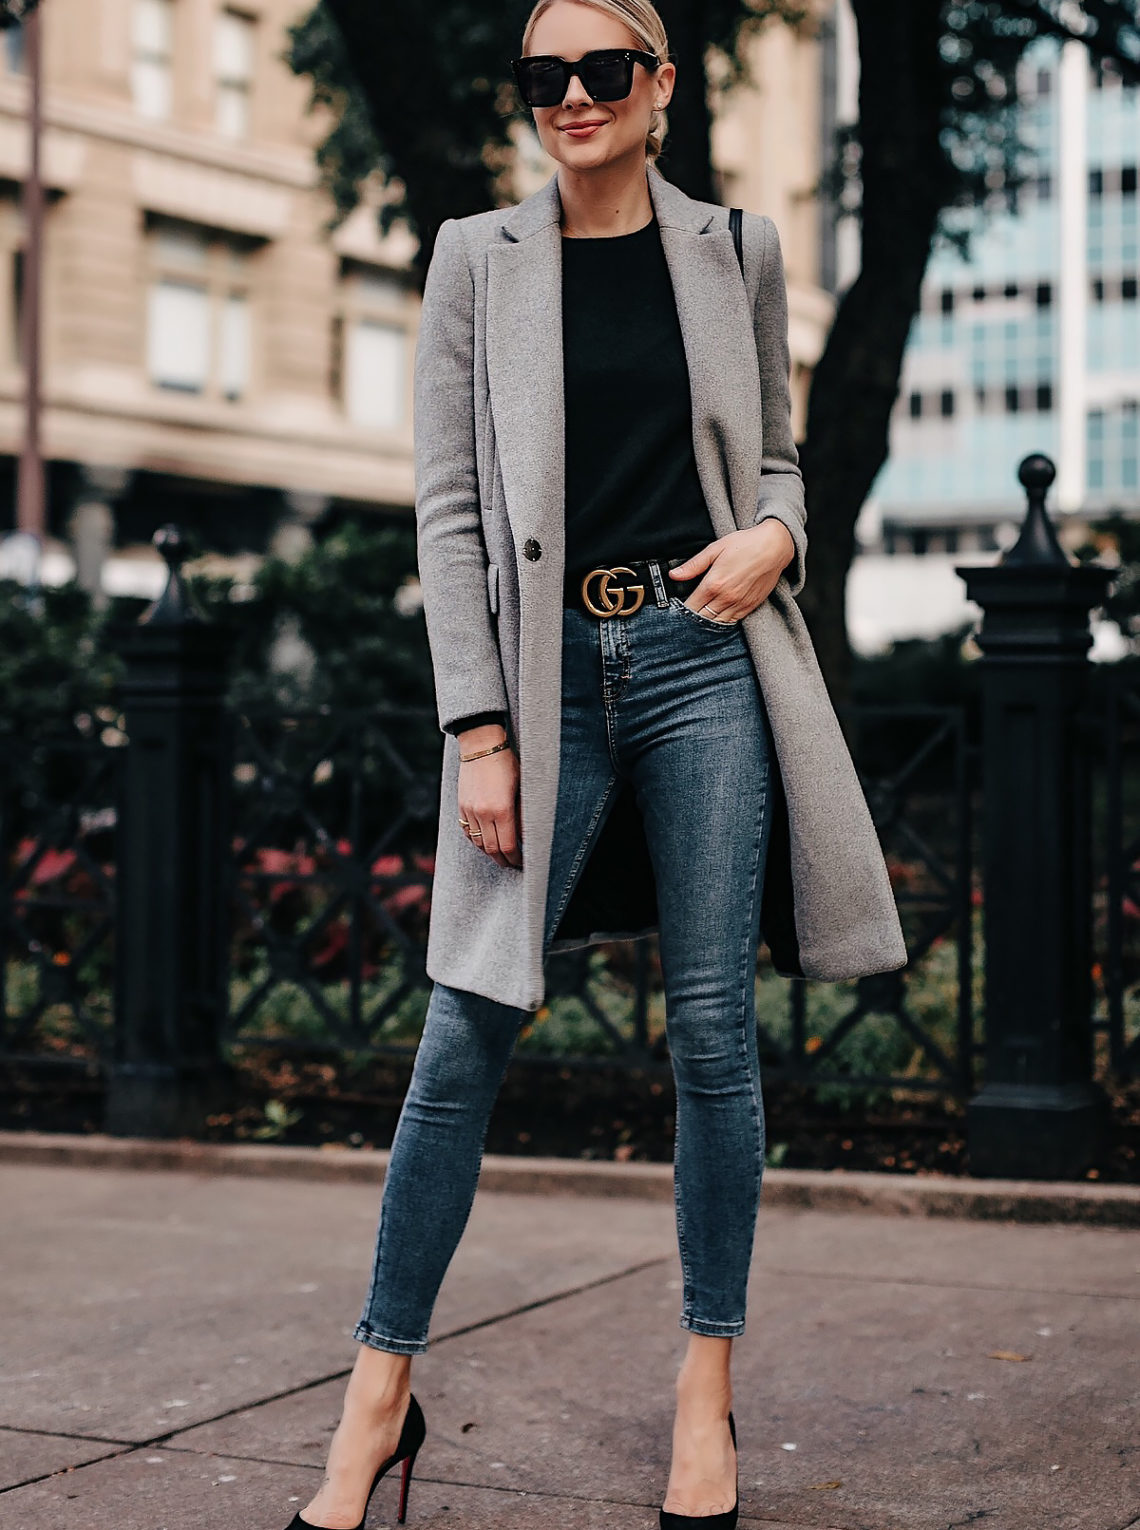 Blonde Woman Wearing Zara Grey Wool Coat Black Sweater Denim Skinny Jeans Gucci Belt Black Pumps Fashion Jackson San Diego Fashion Blogger Street Style